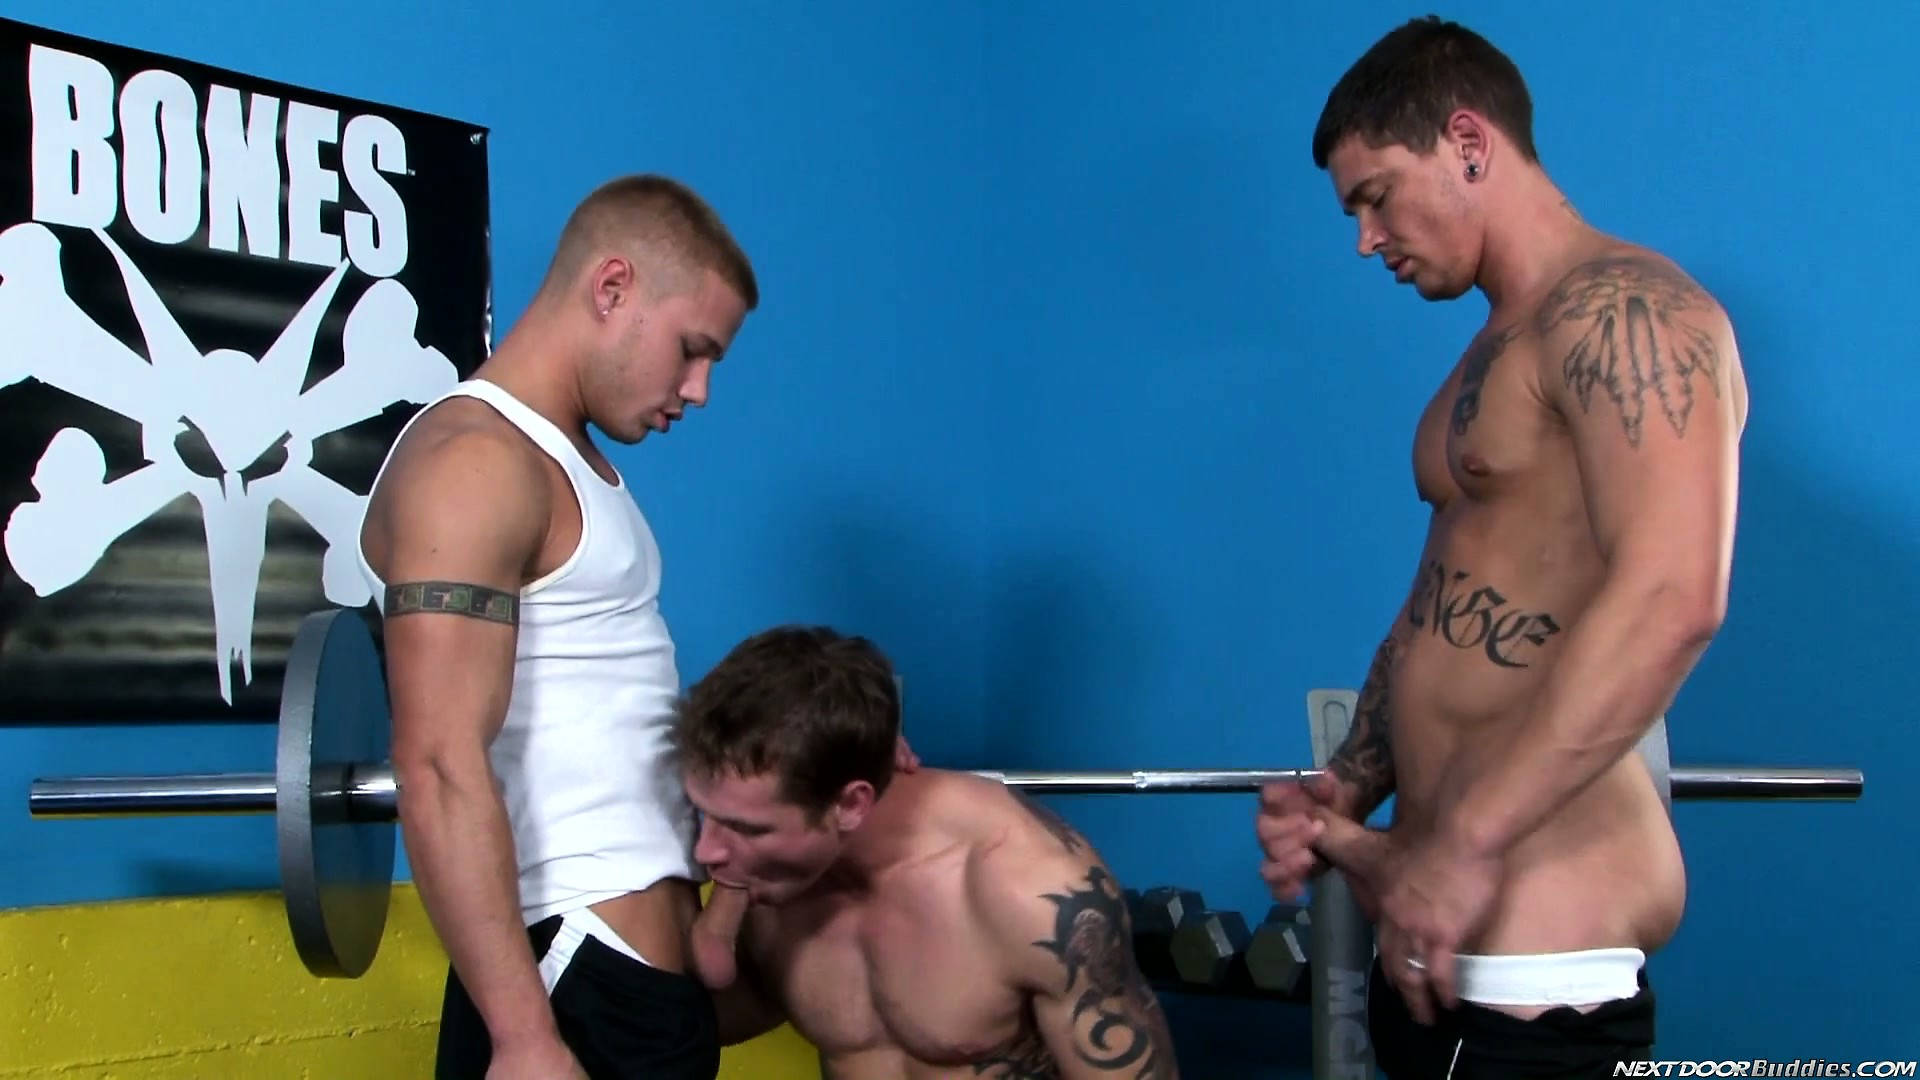 Sex Movie of Working Out At The Gym Makes This Trio Of Buff Boys Horny, So Out Come The Cocks